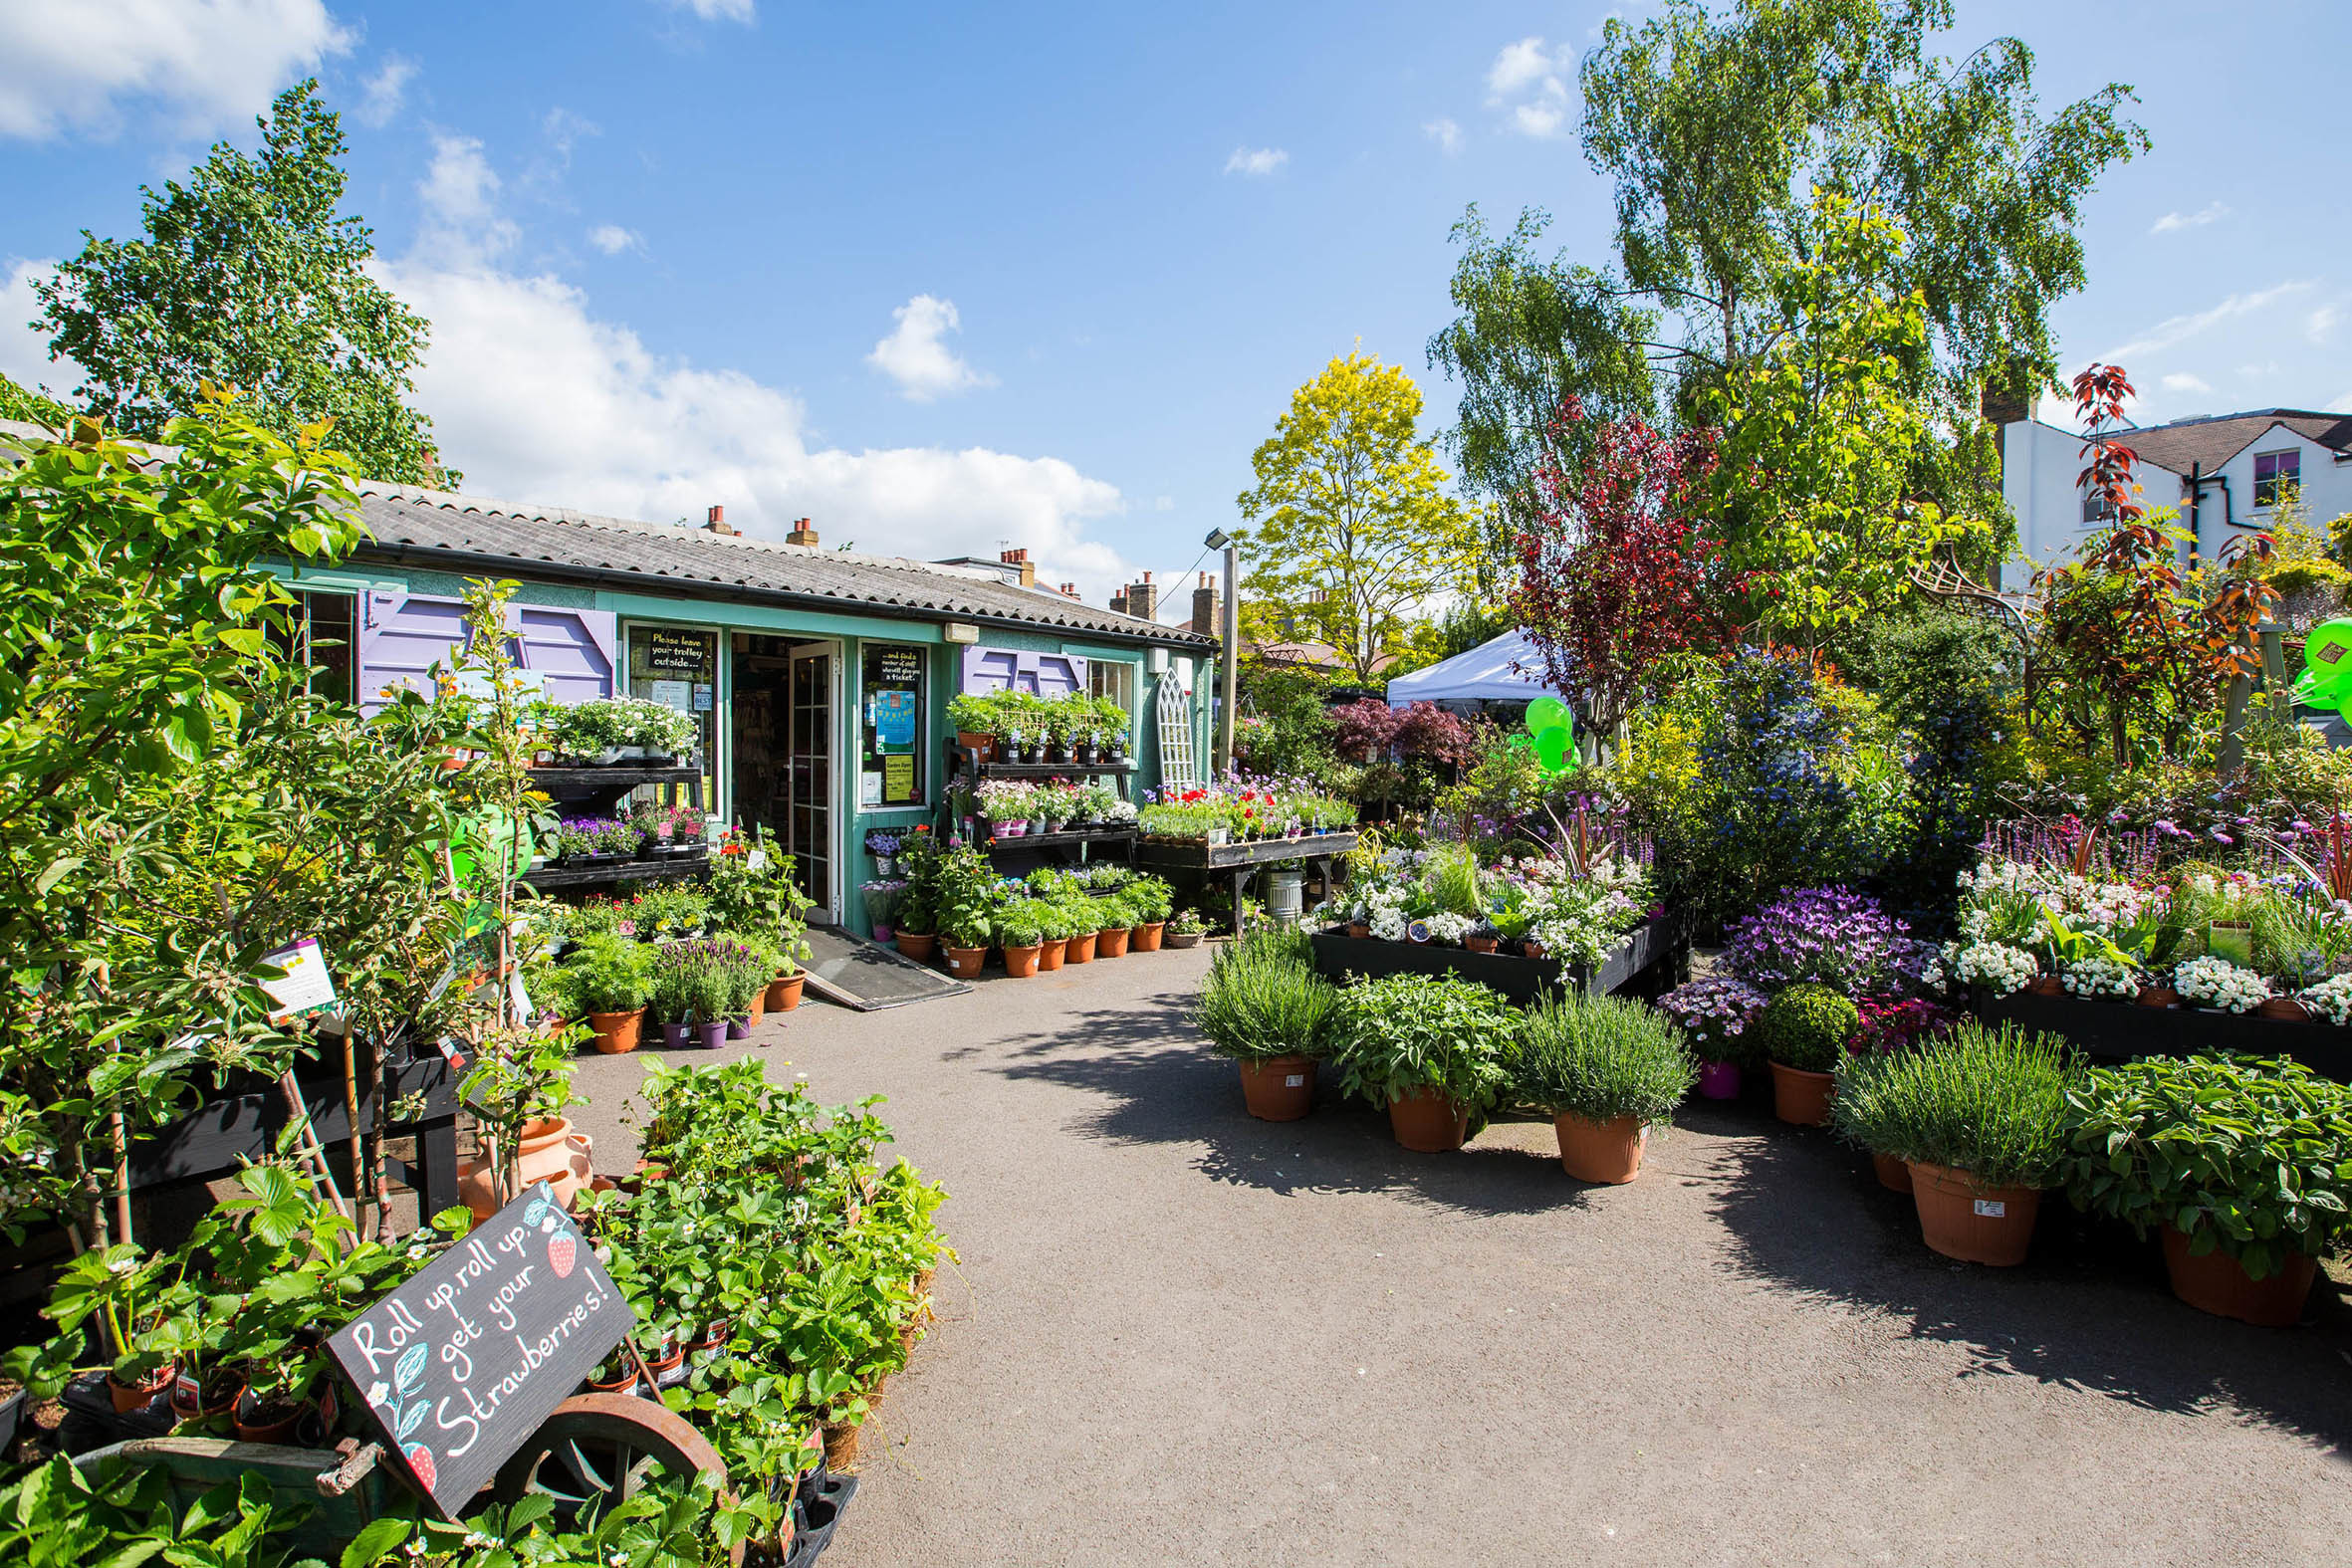 Best Garden Centres And Plant Shops In London 24 Lush Places To Buy Plants